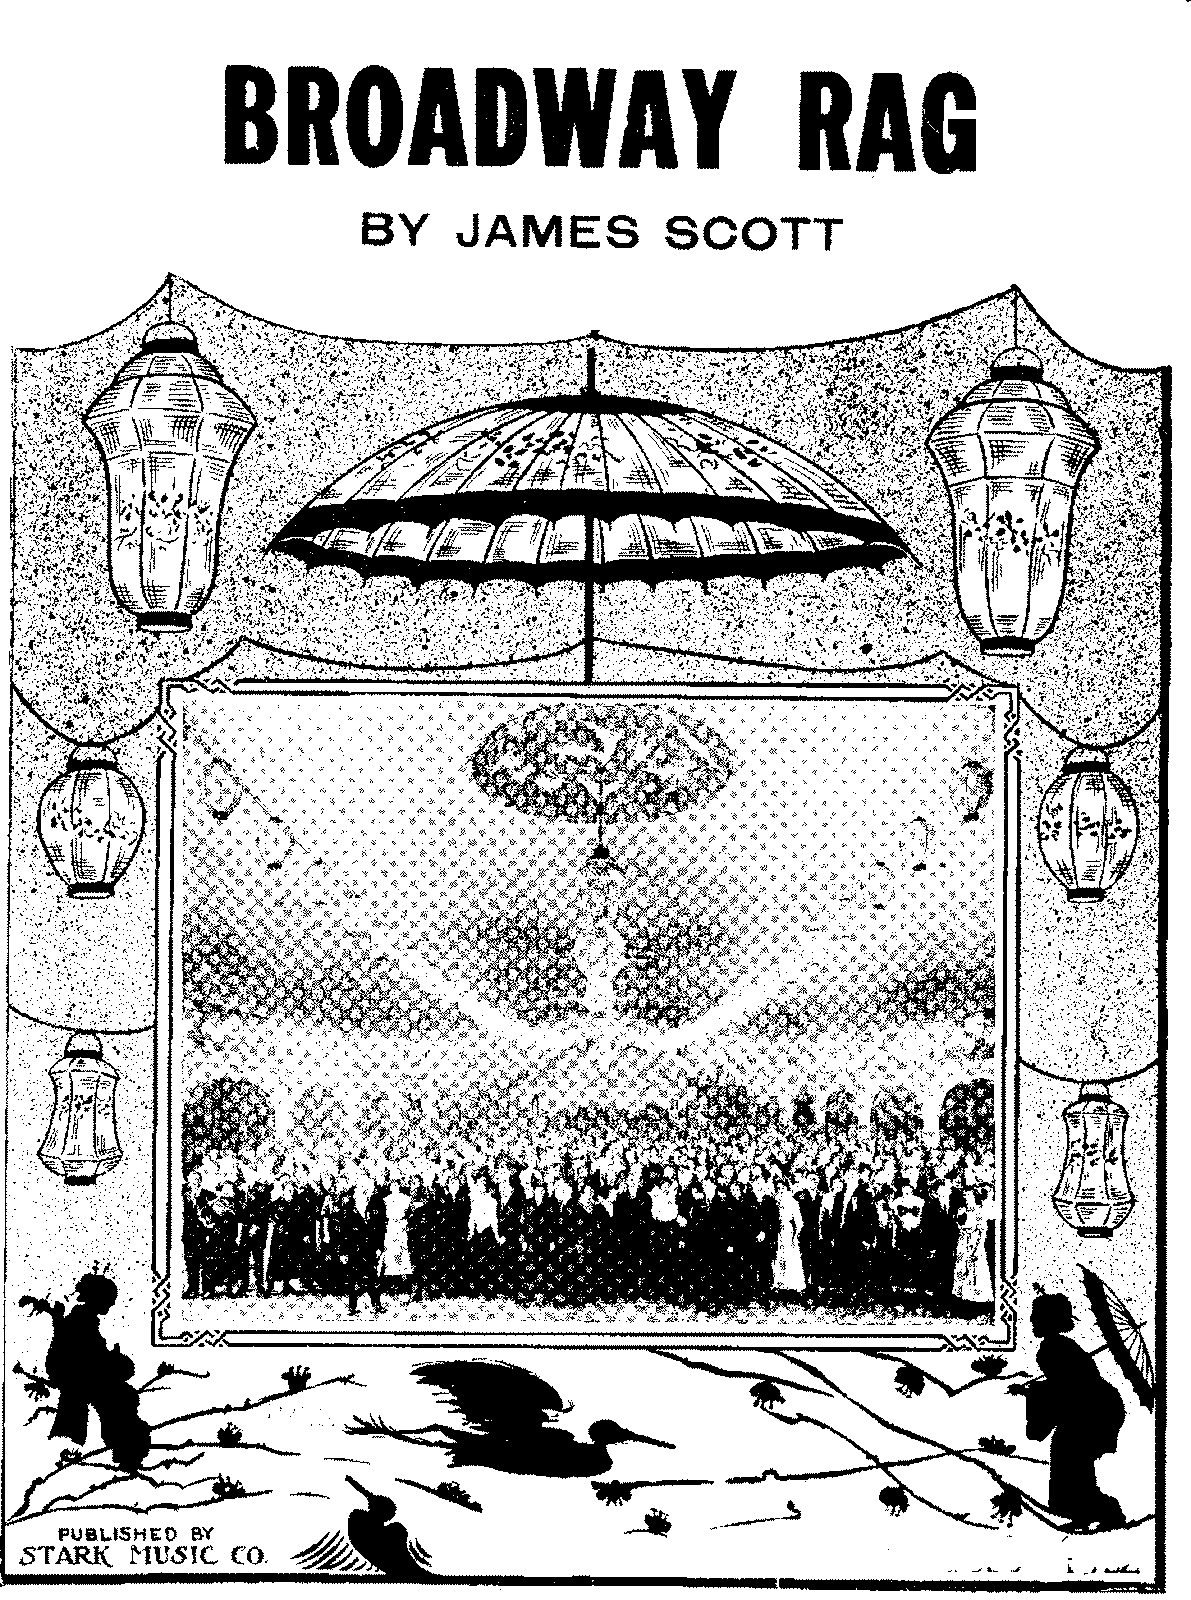 PMLP633940-Broadway Rag James Scott.pdf